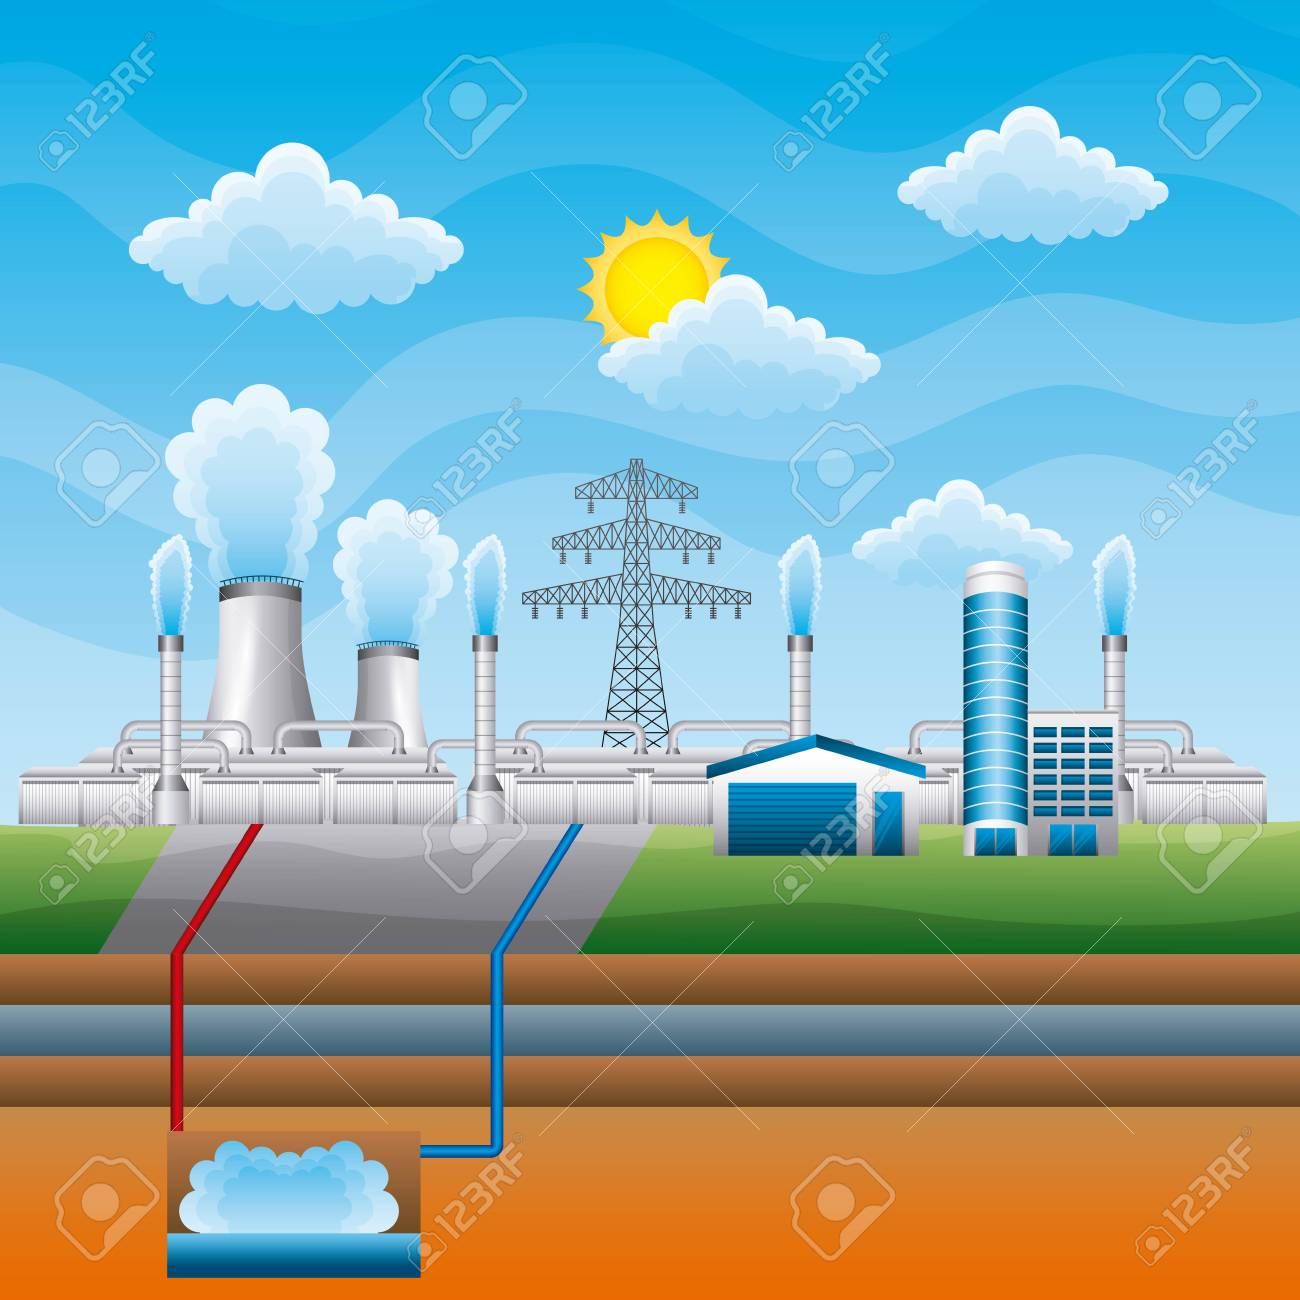 Station geothermal power clean - renewable energy vector illustration - 96899856